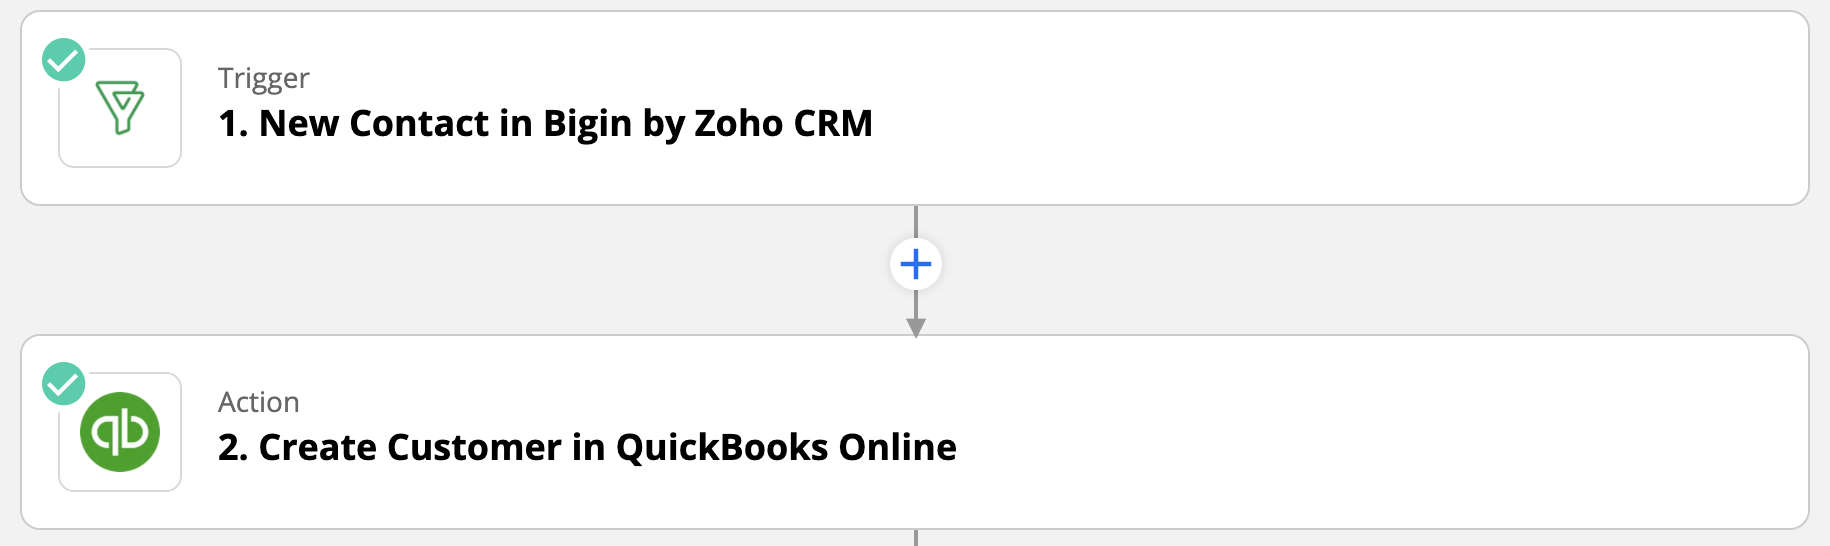 Bigin and Quickbooks integration through Zapier